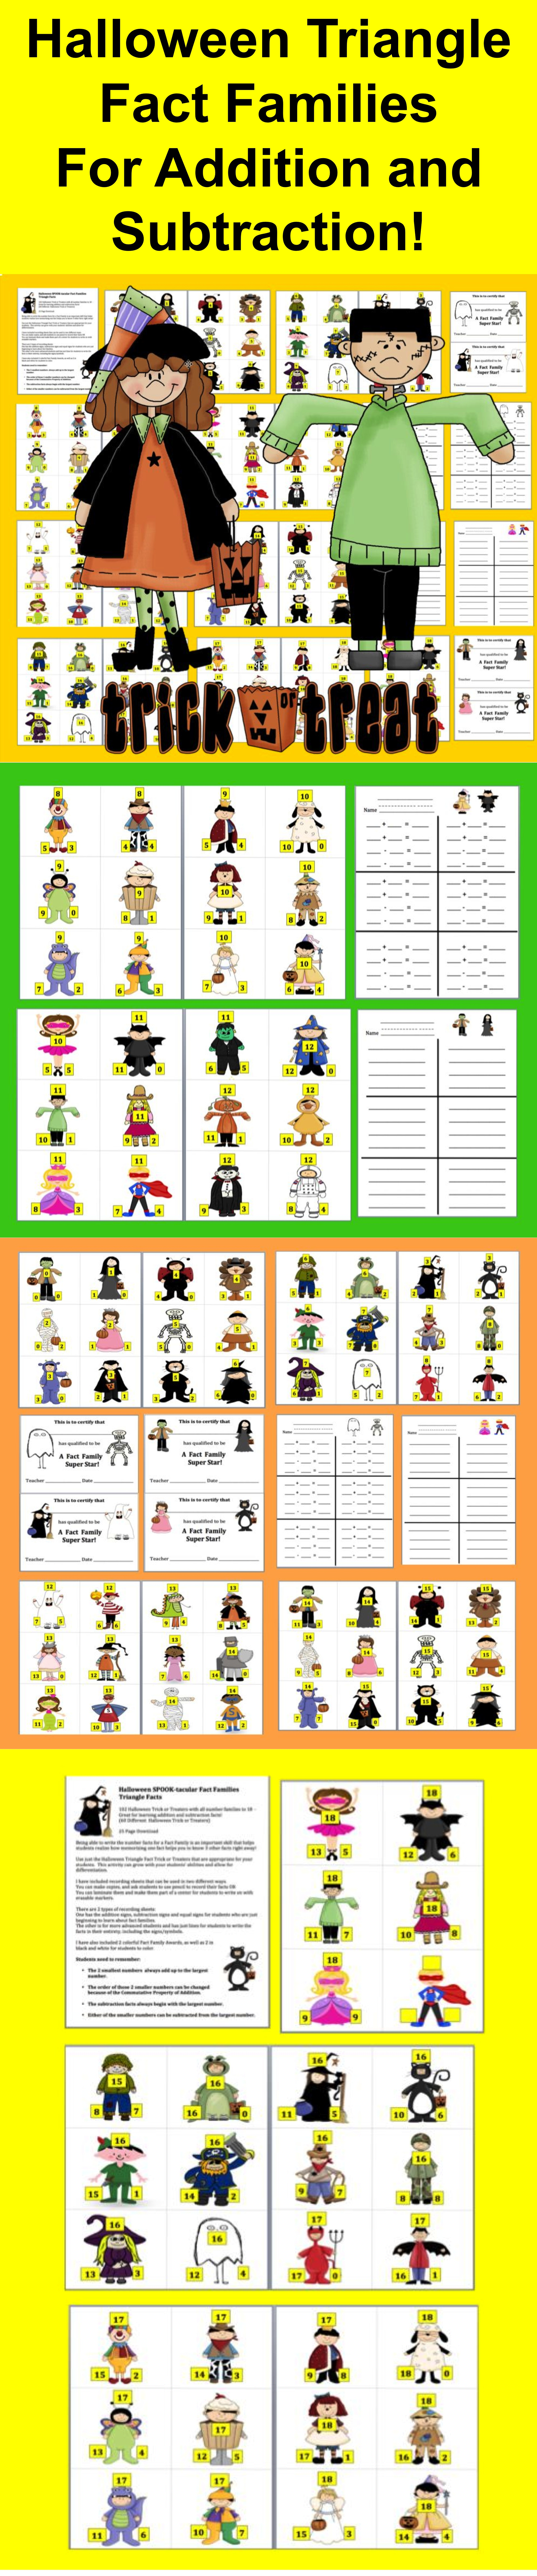 Halloween Math Spook Tacular Fact Families Addition And